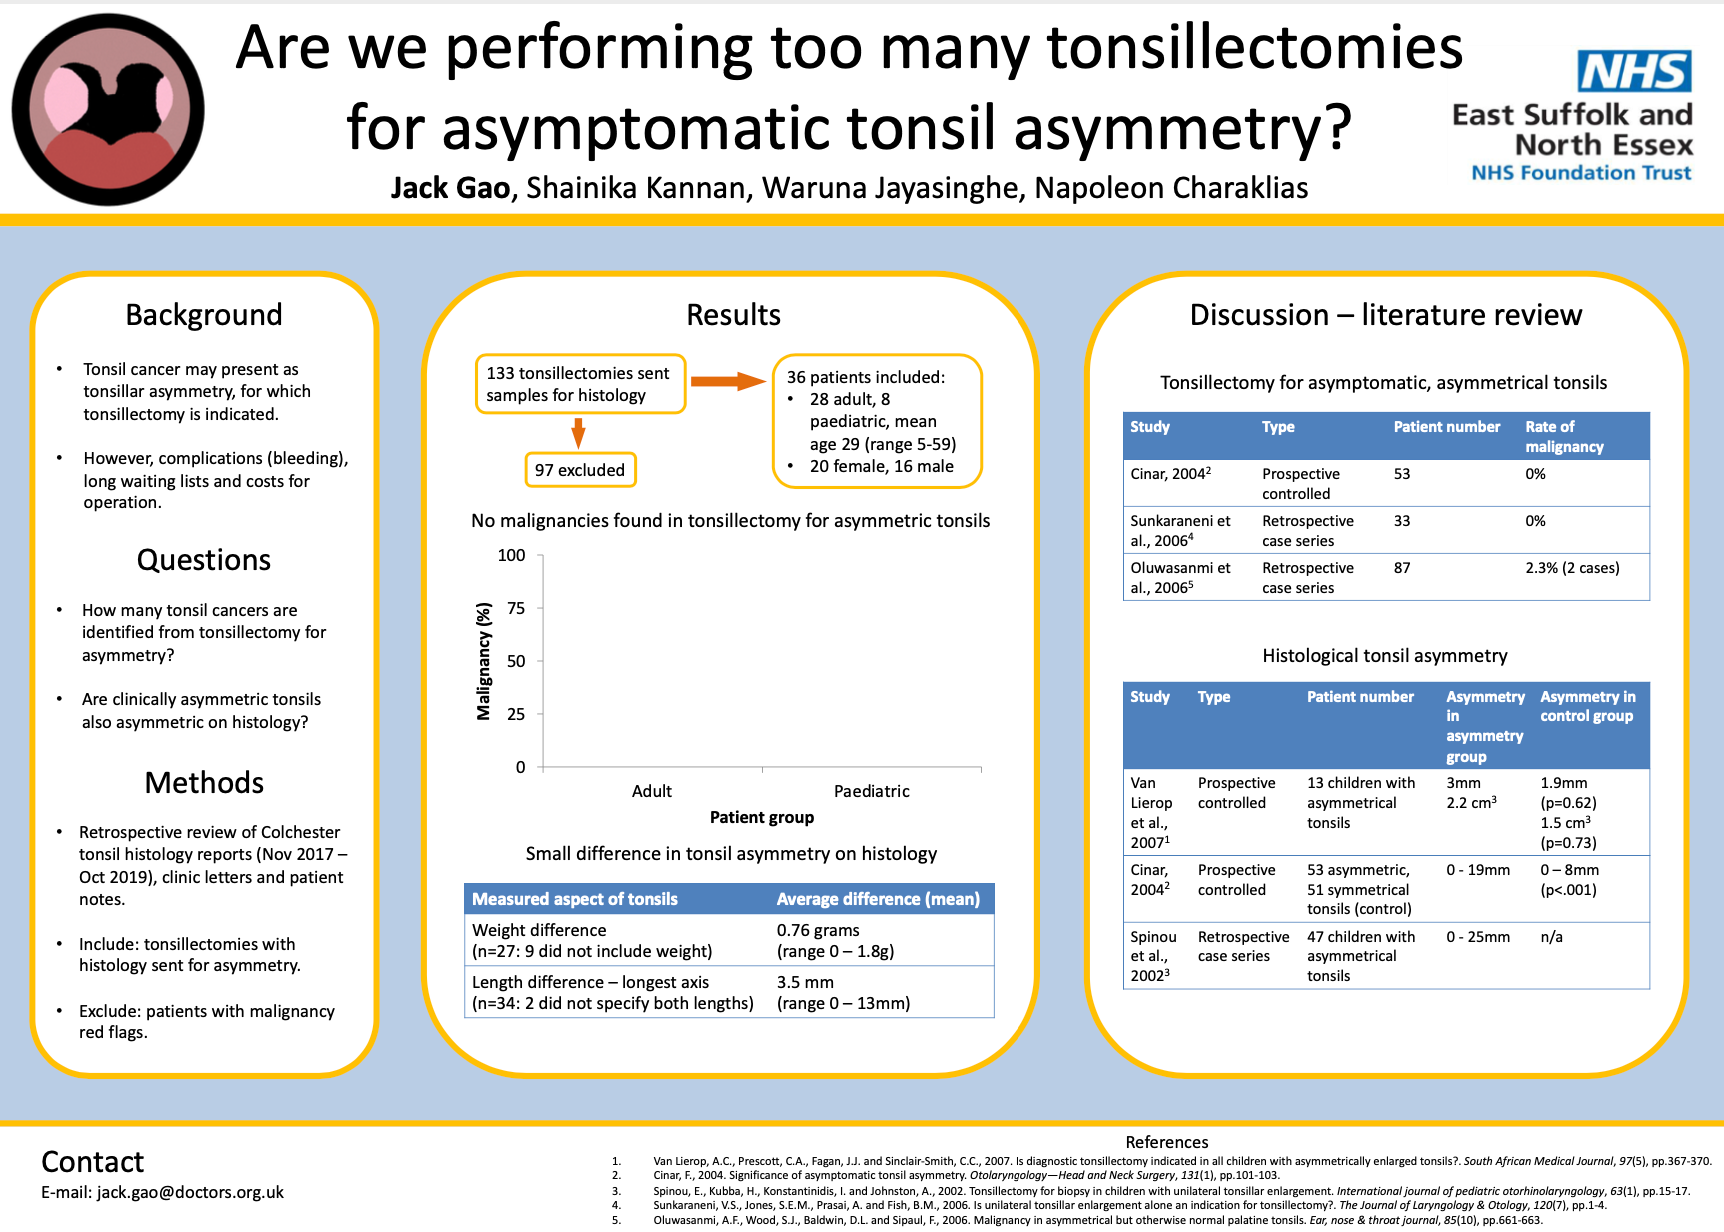 Are we performing too many tonsillectomies for asymptomatic tonsil asymmetry? Jack Gao